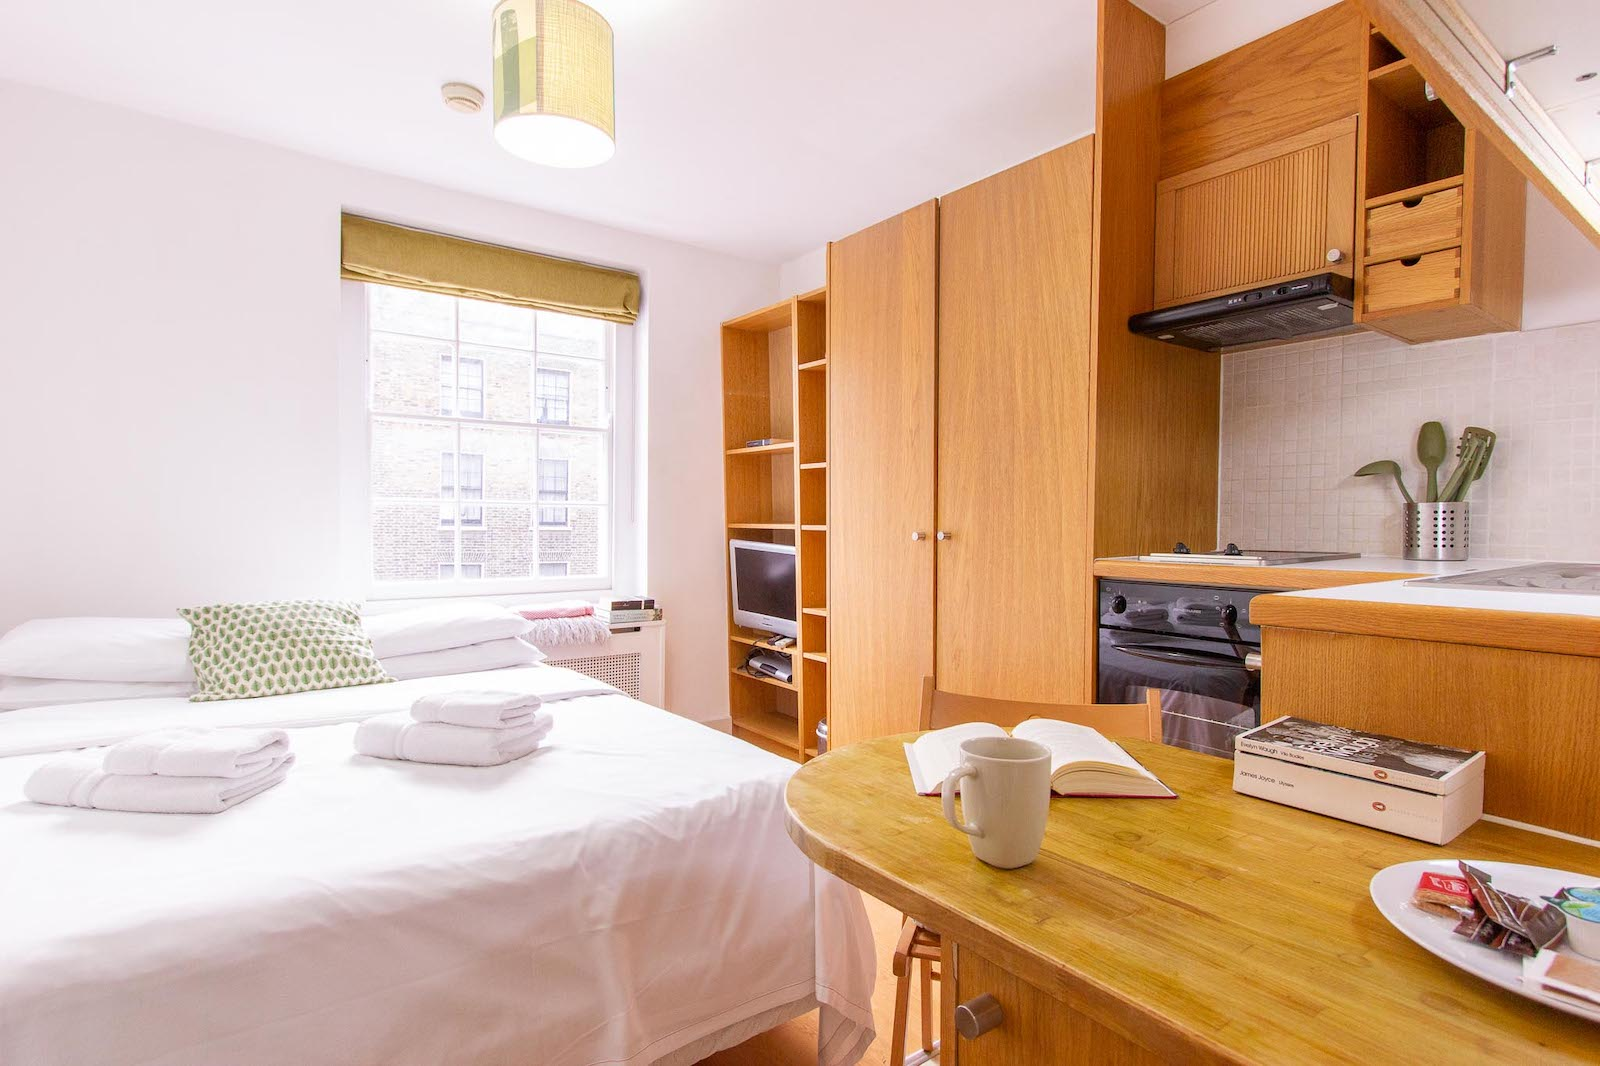 Is it better to rent a furnished or unfurnished flat? - The pros and cons of renting a furnished flat in London